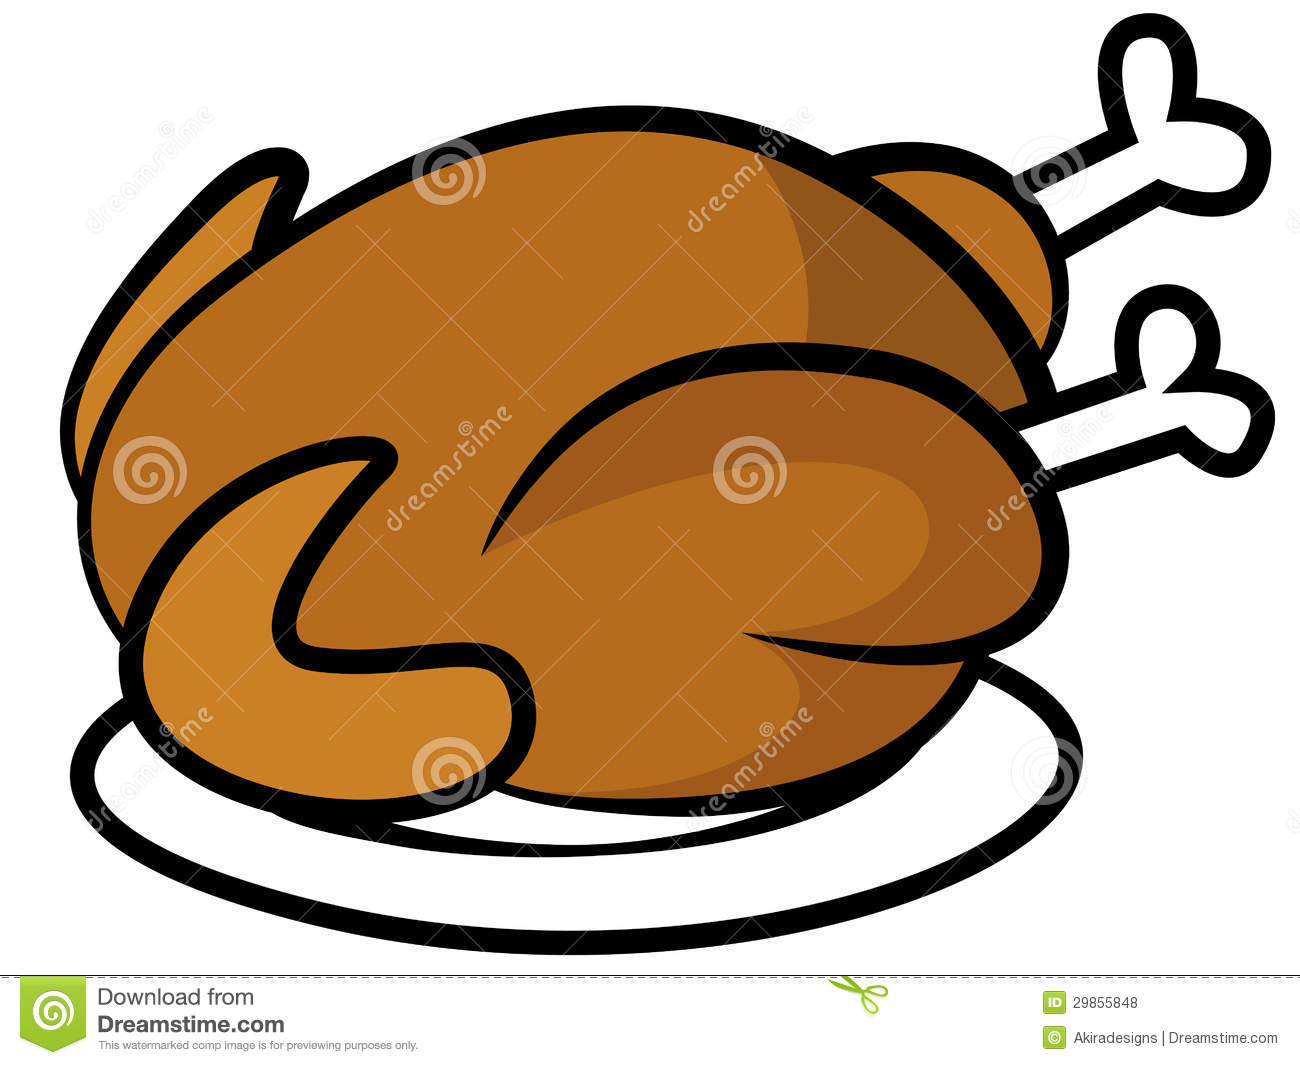 Chicken Or Turkey On Plate Royalty Free Stock Photos - Image: 29855848